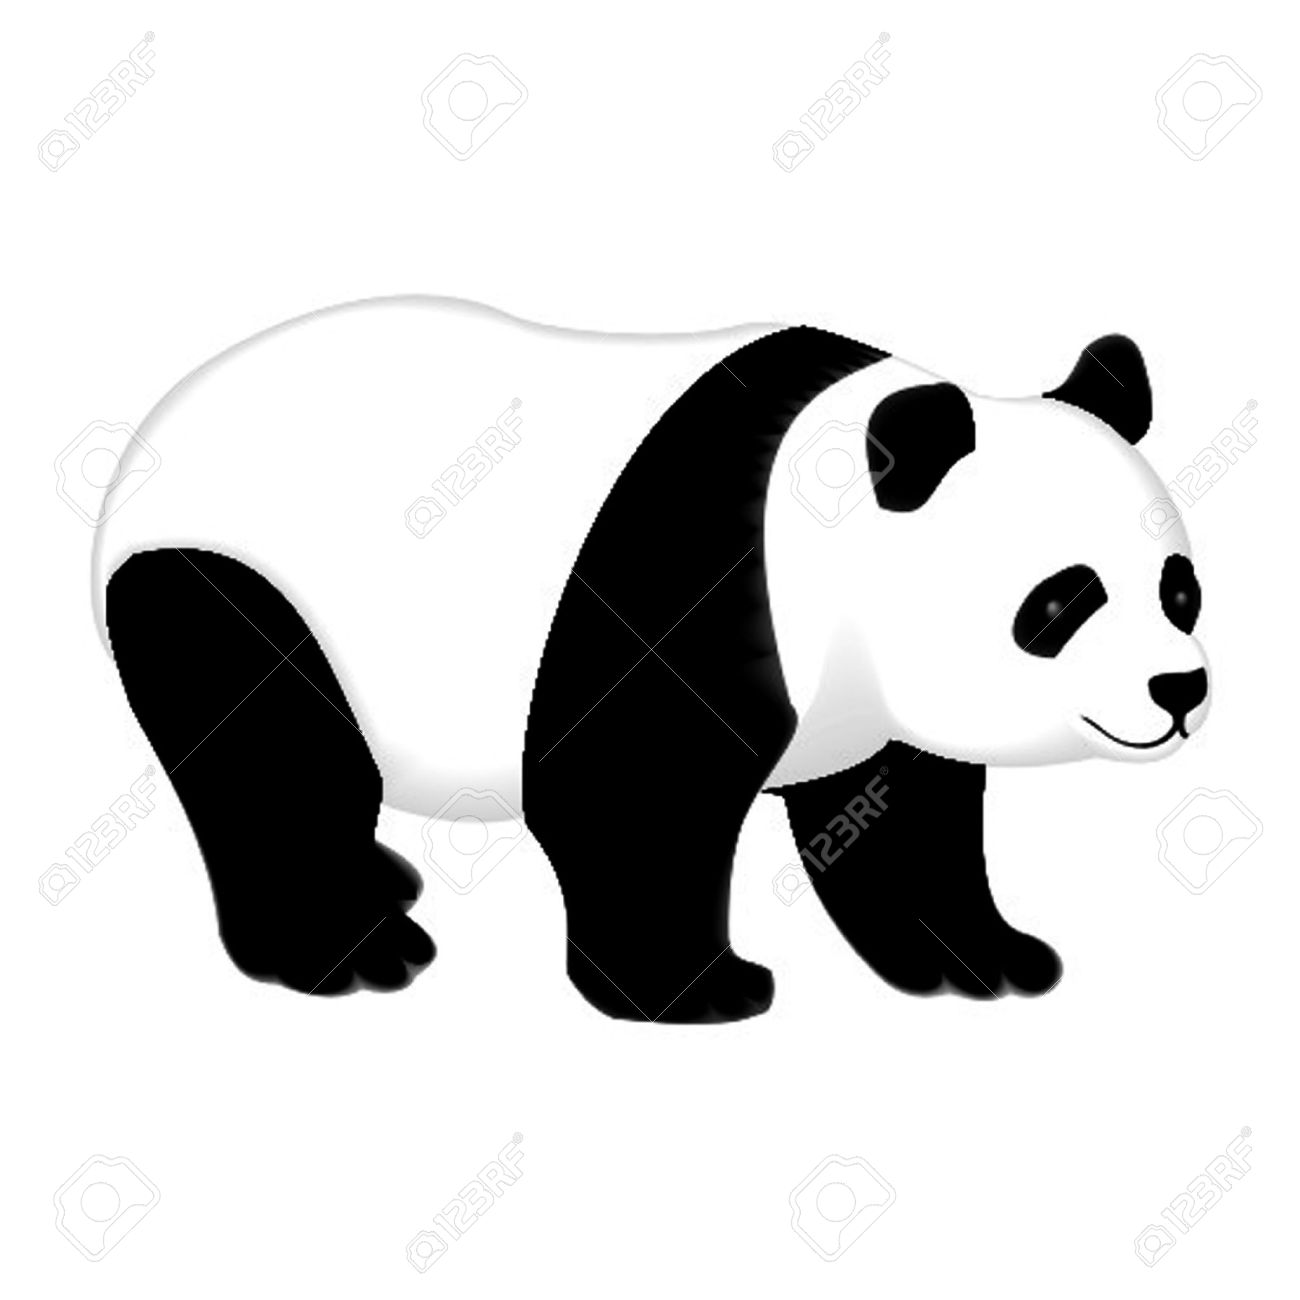 Giant panda clipart - Clipground